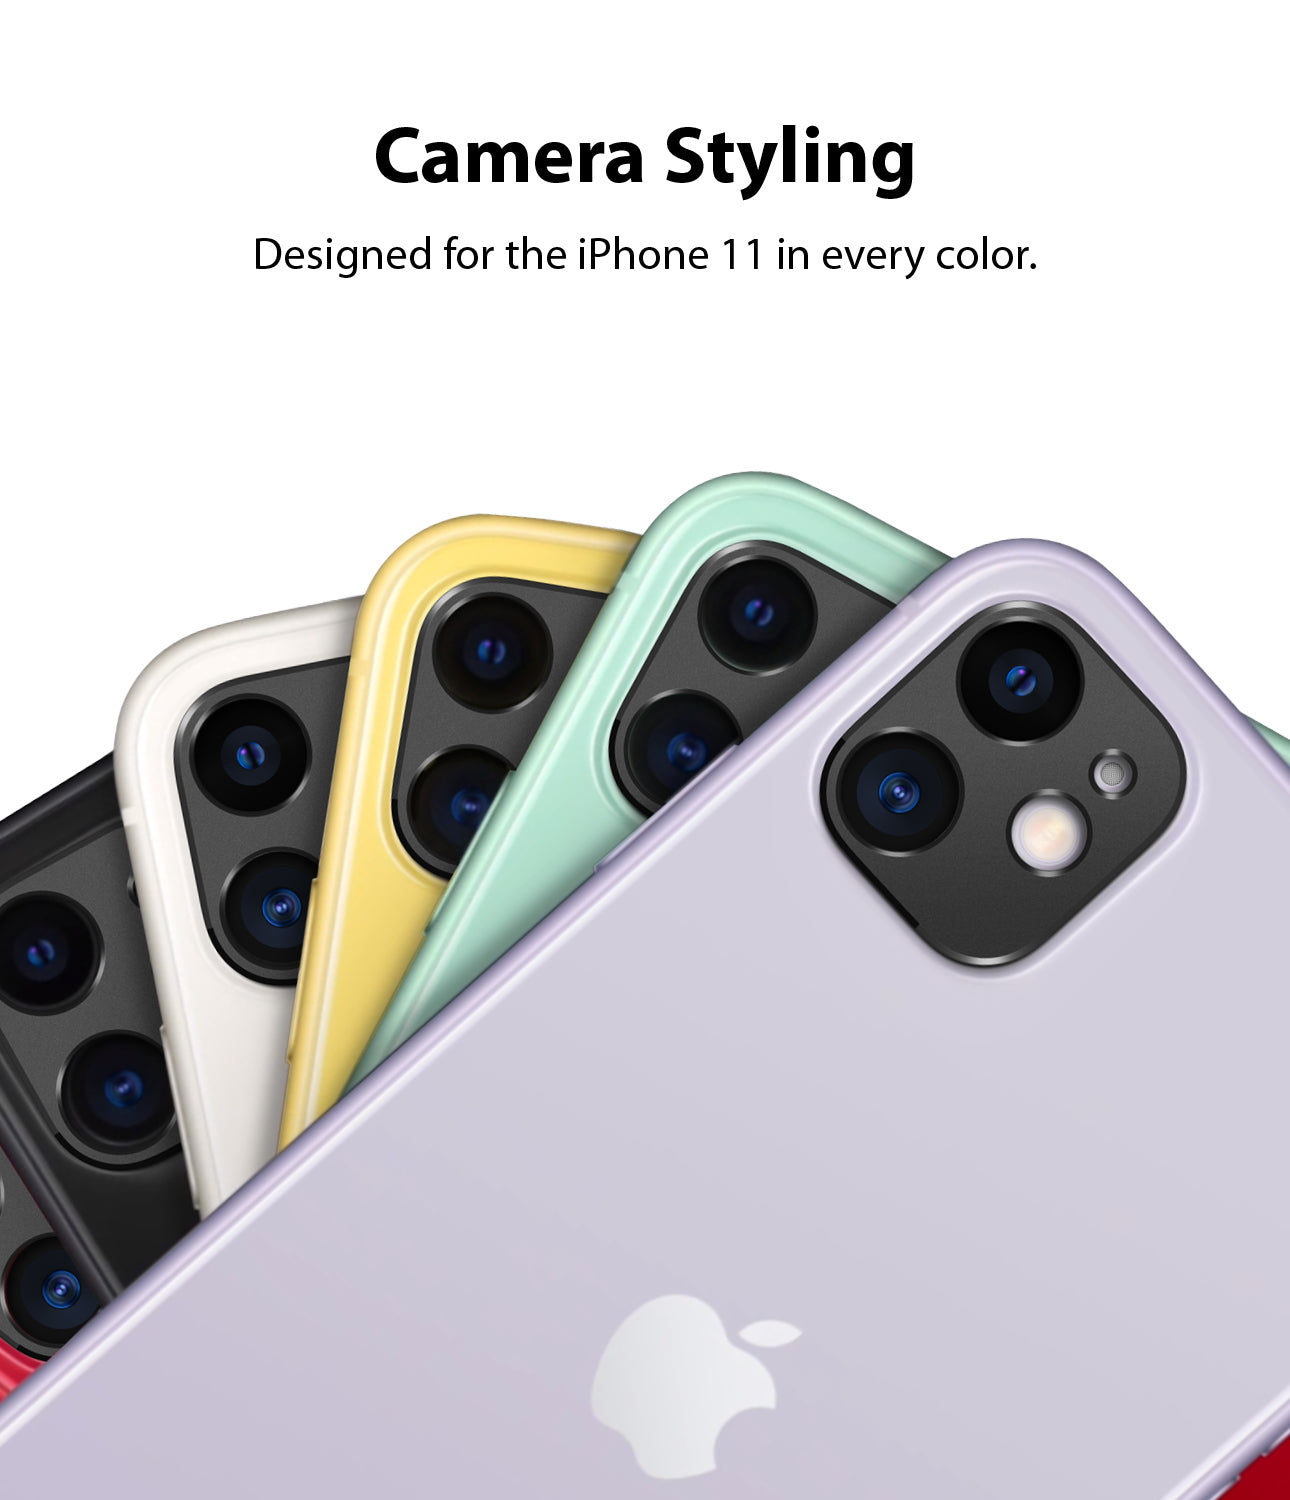 designed for every color of iphone 11